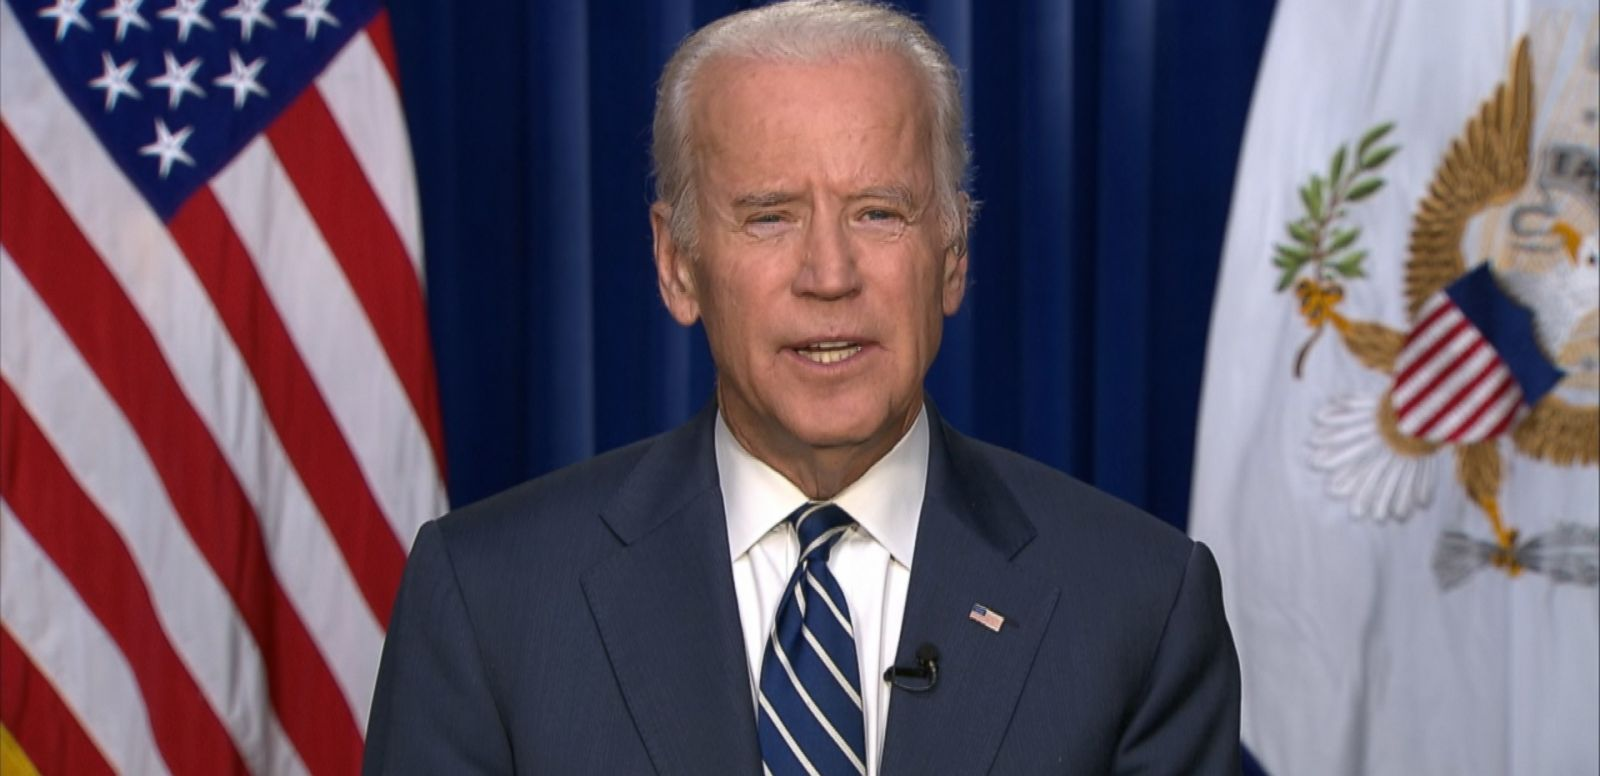 VIDEO: Joe Biden Says Some Police Organizations Acknowledge Institutional Racism